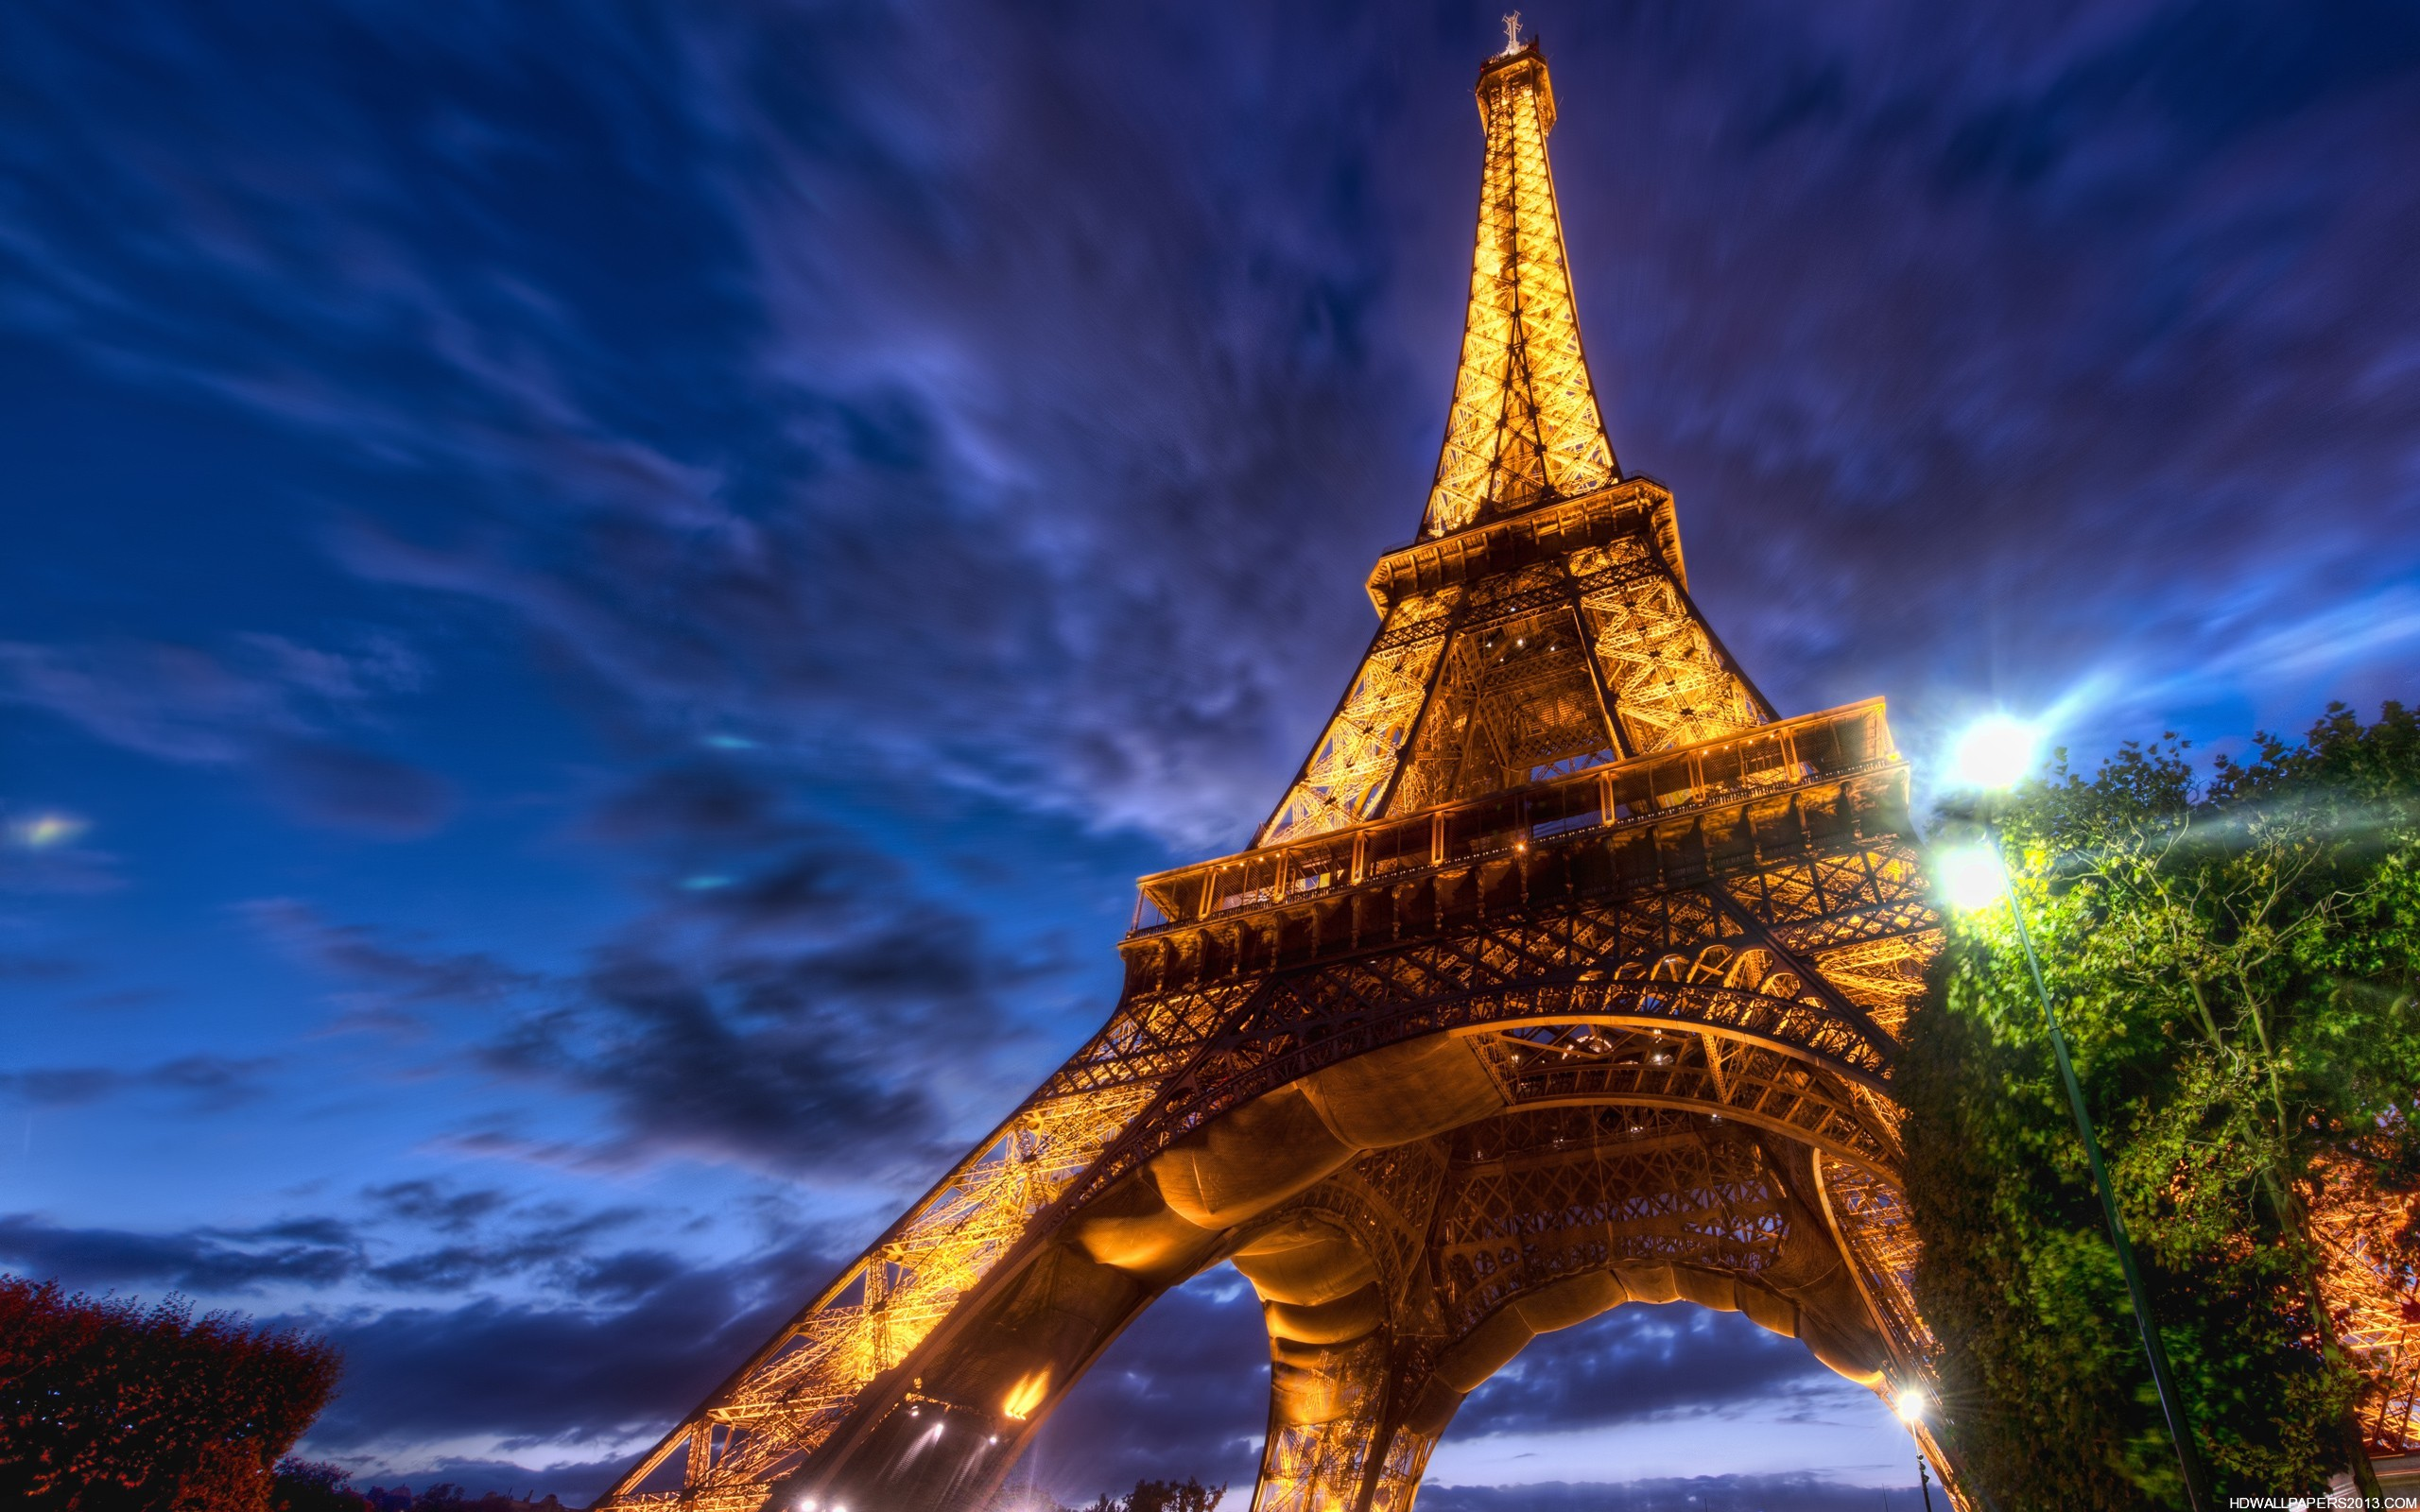 Masterly Eiffel Tower Wallpaper Hd Eiffel Tower Wallpaper Eiffel Tower Wallpaper Definition Definition Eiffel Tower Wallpaper Black houzz-03 Eiffel Tower Wallpaper